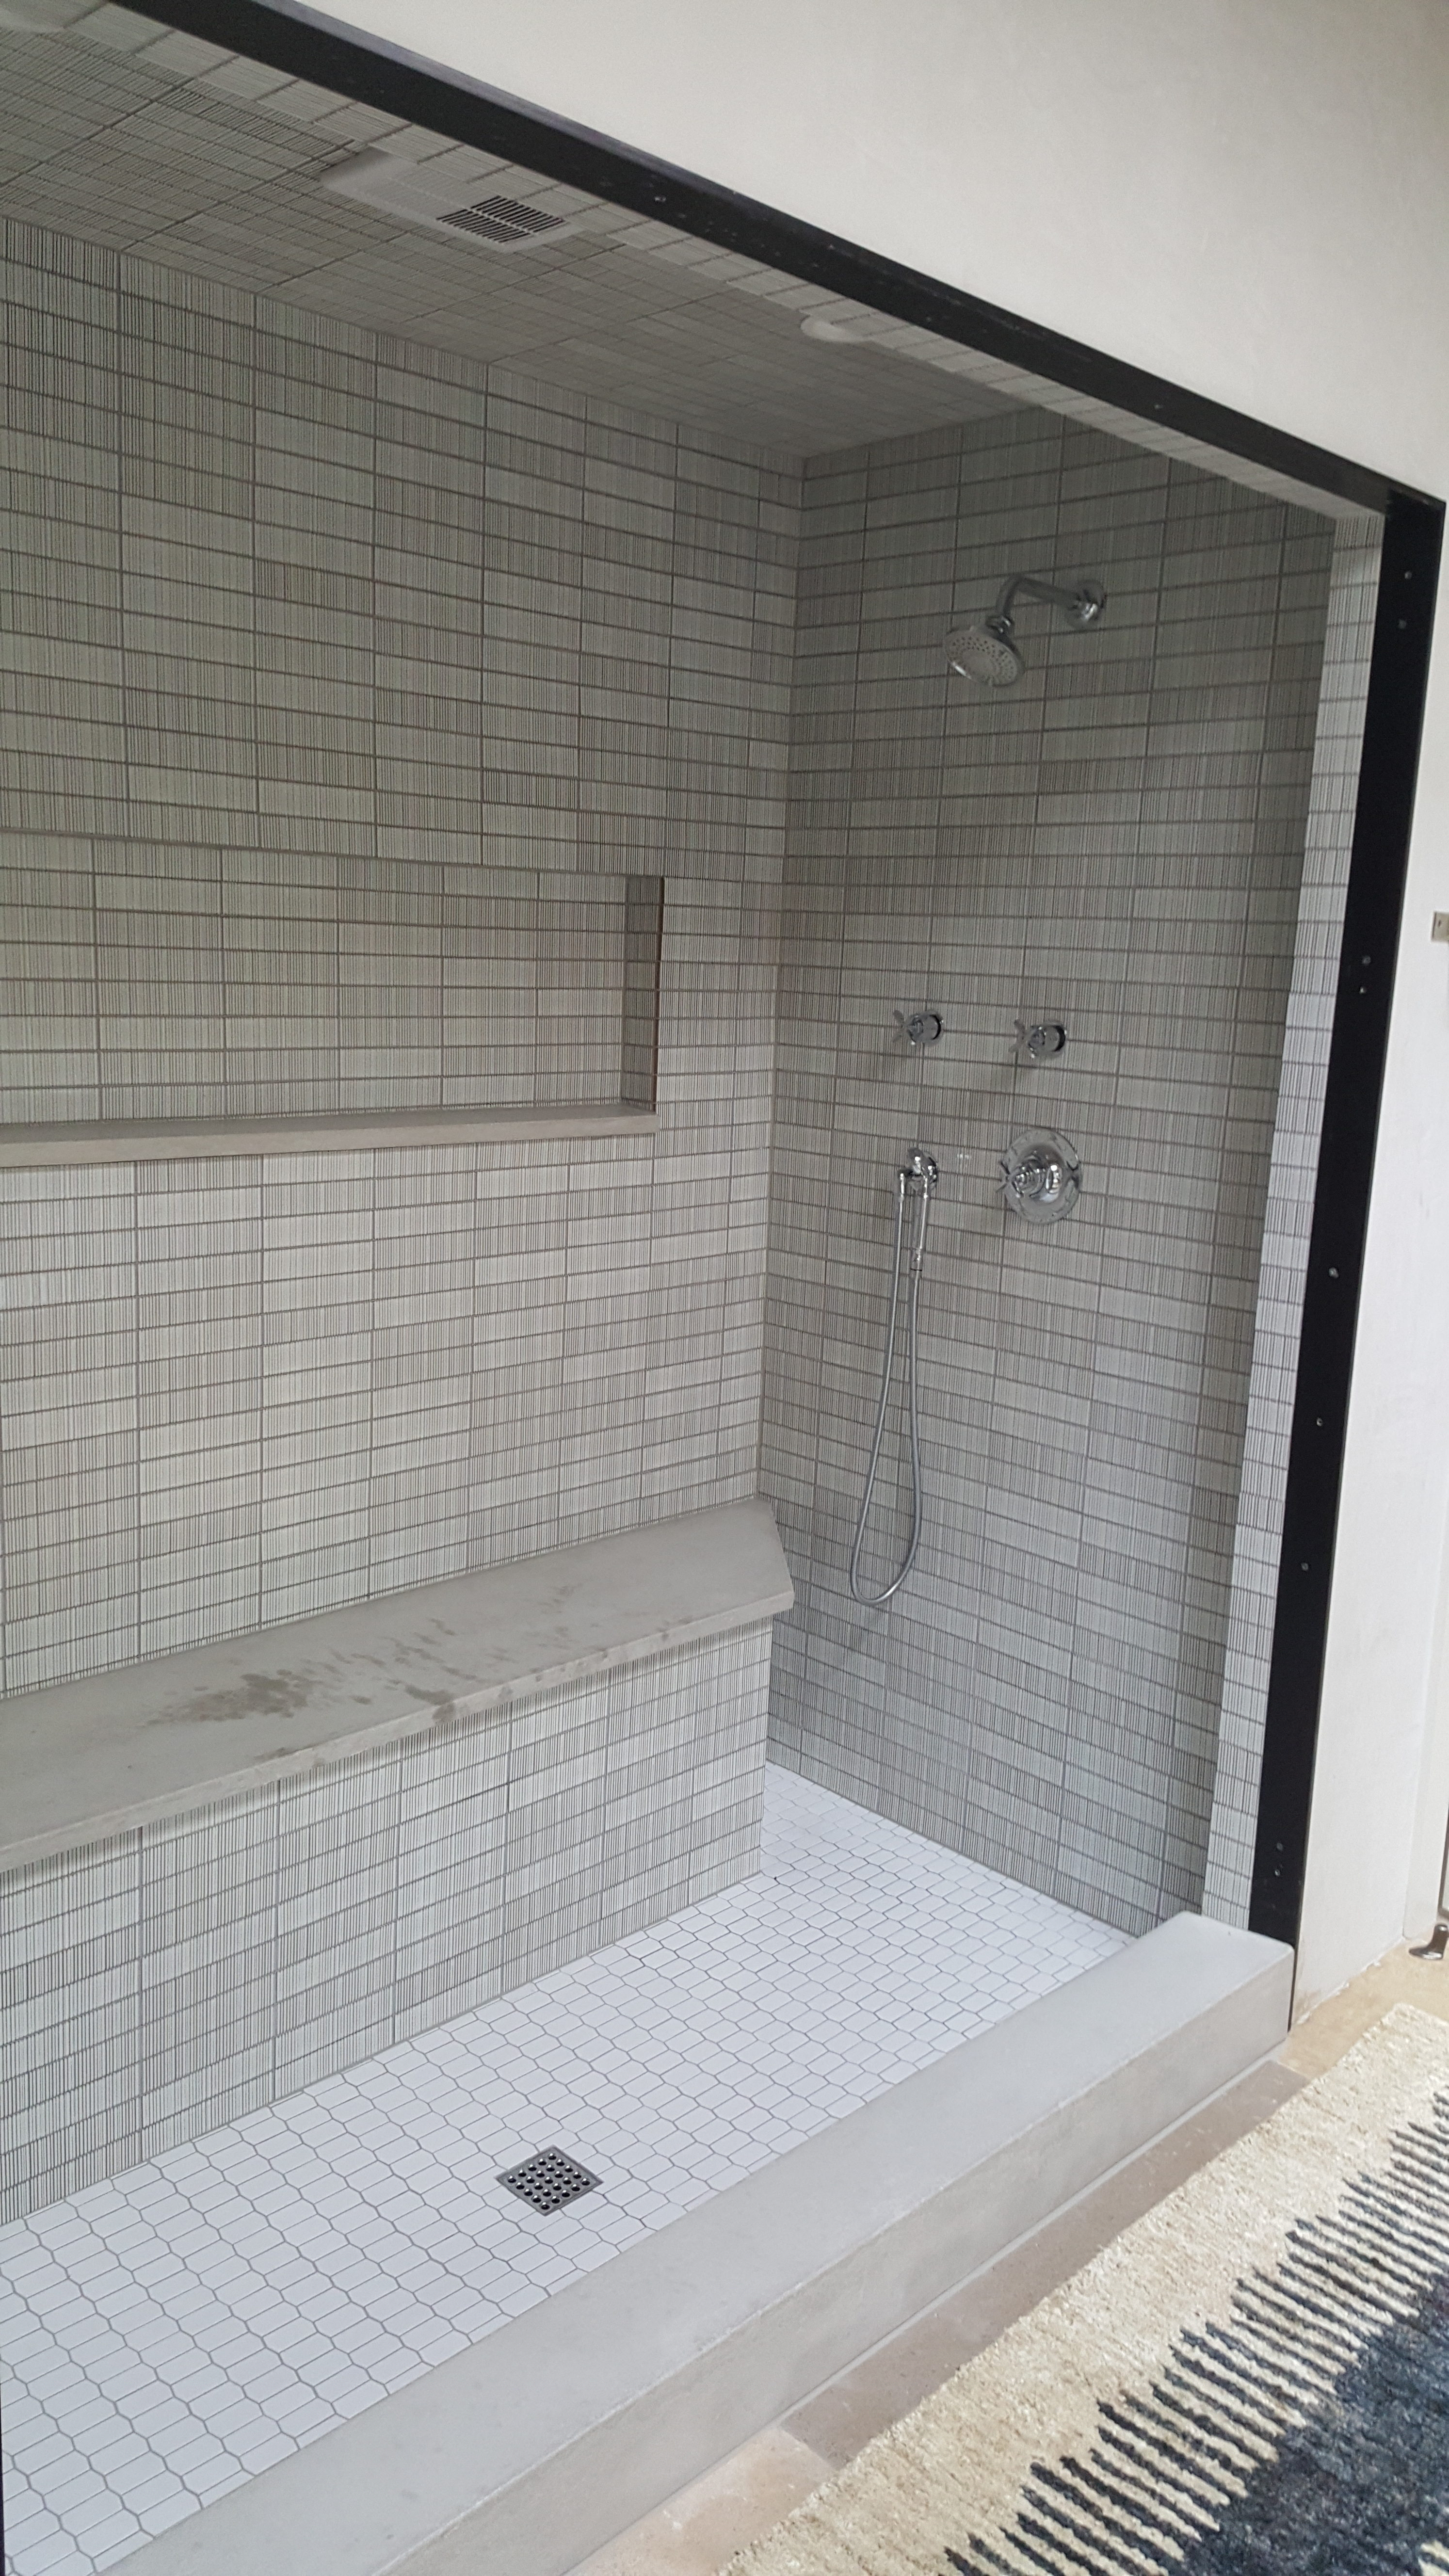 Ntca five star contractors tileletter ceramic tile shower walls in soldier course over cement board with waterproofing membrane bench was built from cinderblock with limestone accents in niche dailygadgetfo Gallery